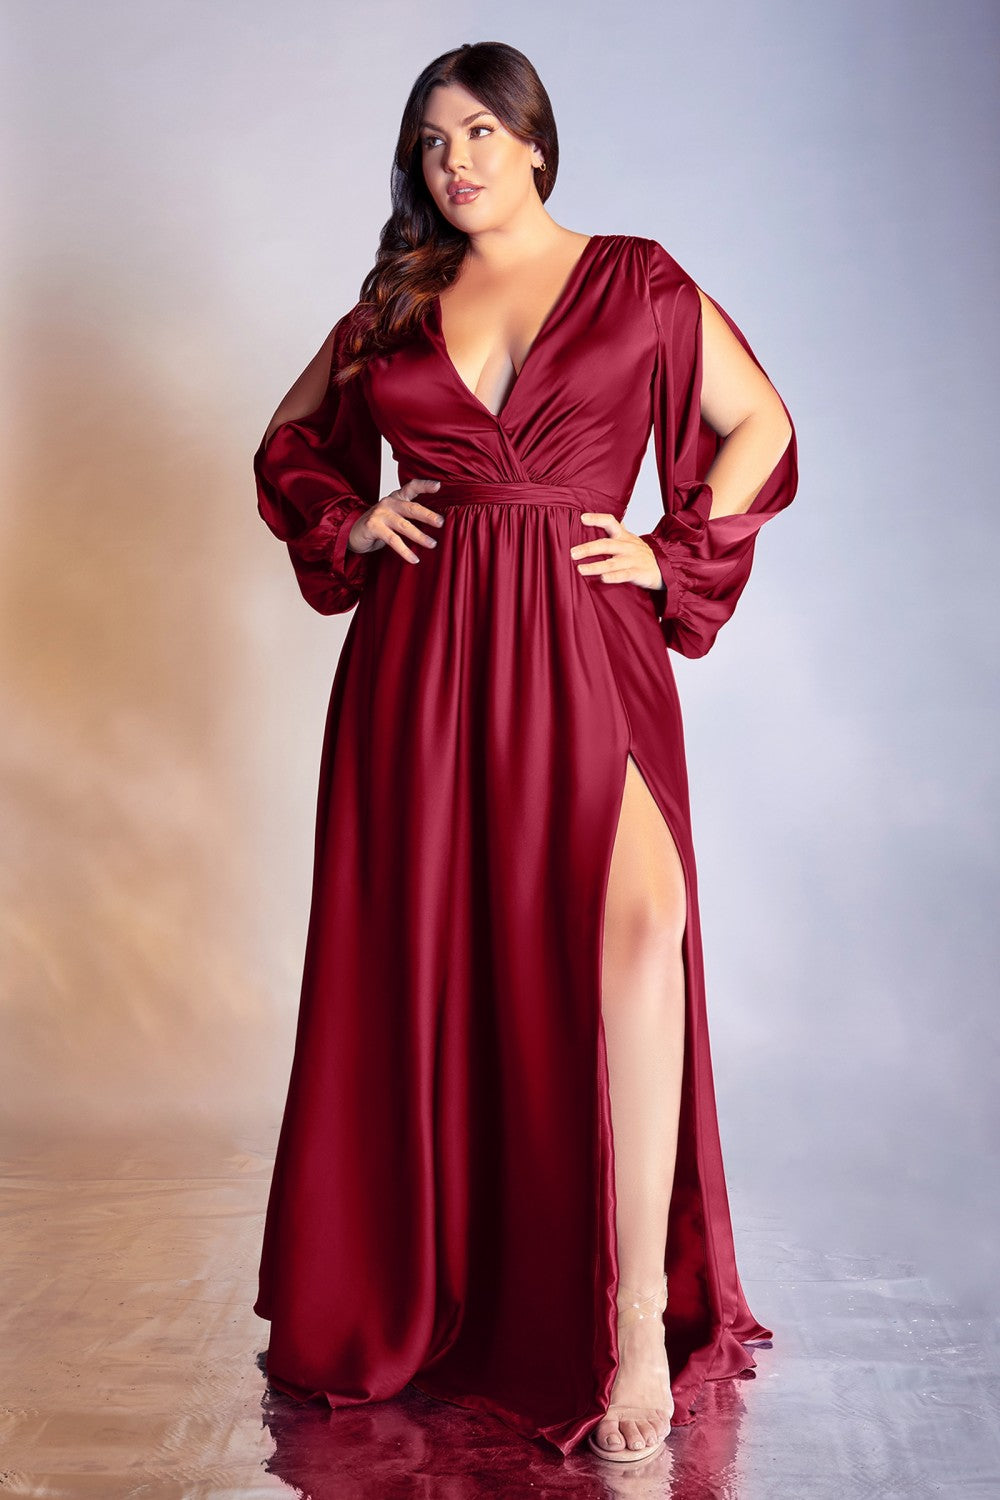 Doreen Long Sleeve Bridesmaid Dress in Burgundy Doreen C7475KK-Burgundy